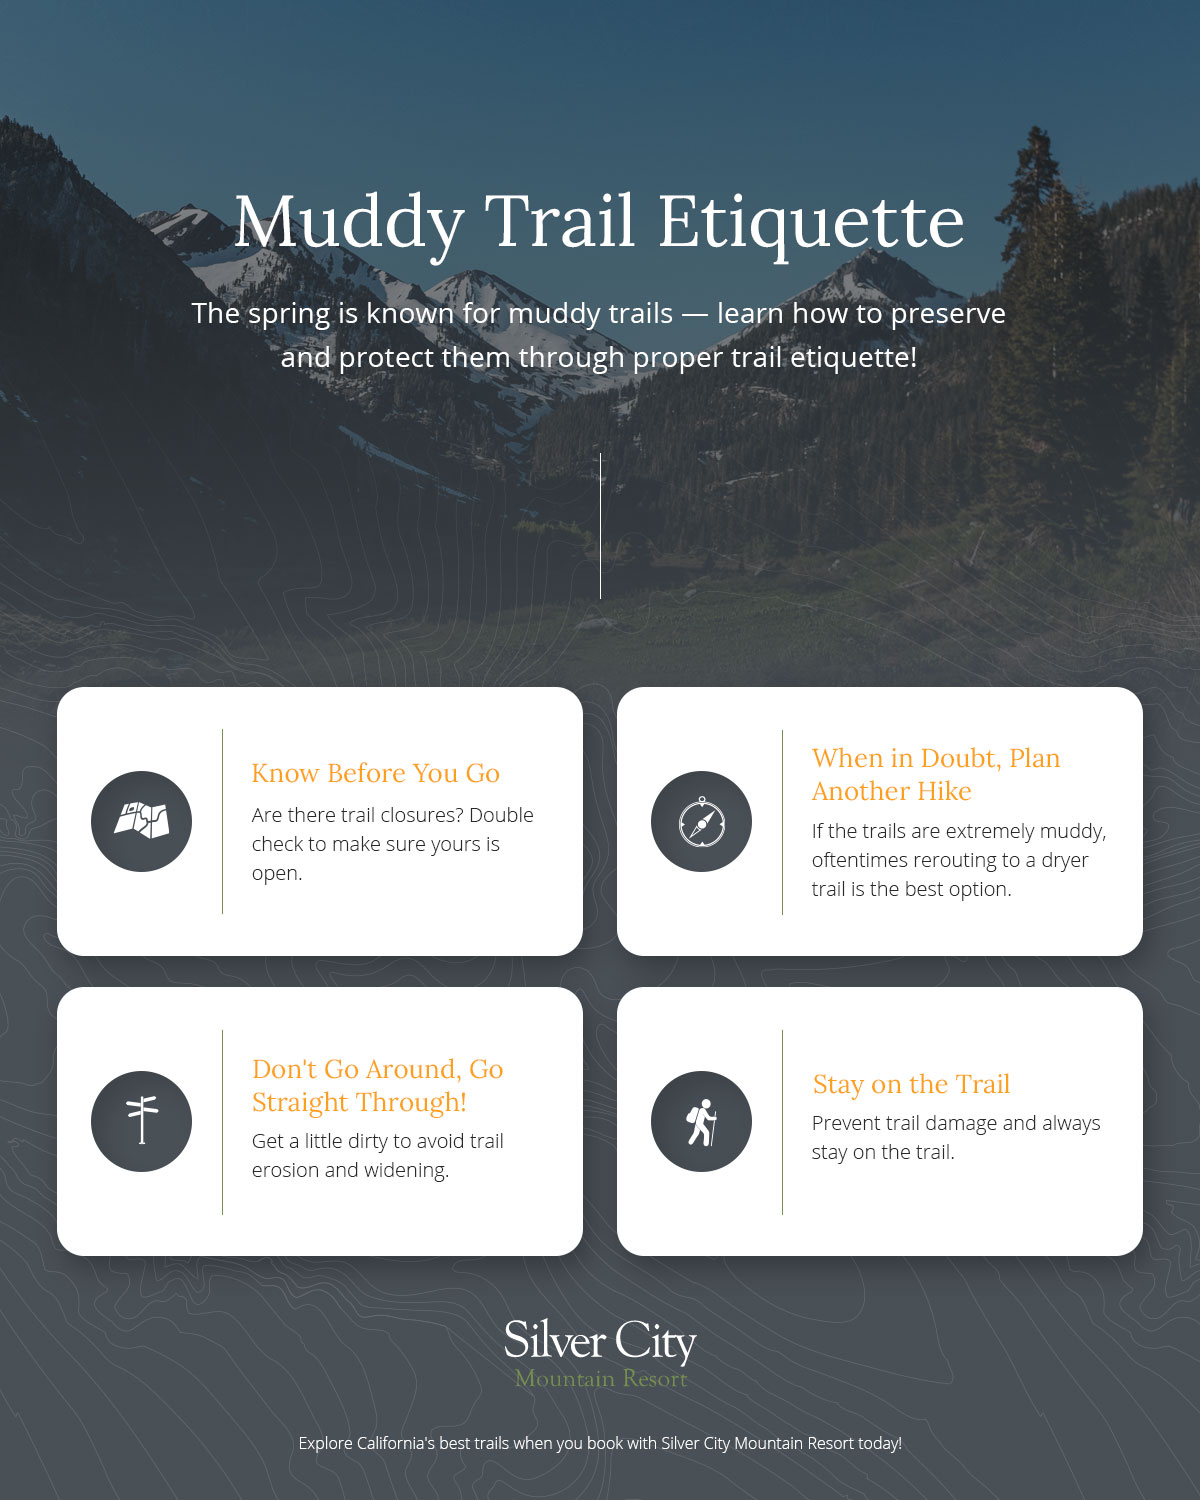 Muddy-Trail-Etiquette-infographic.jpg